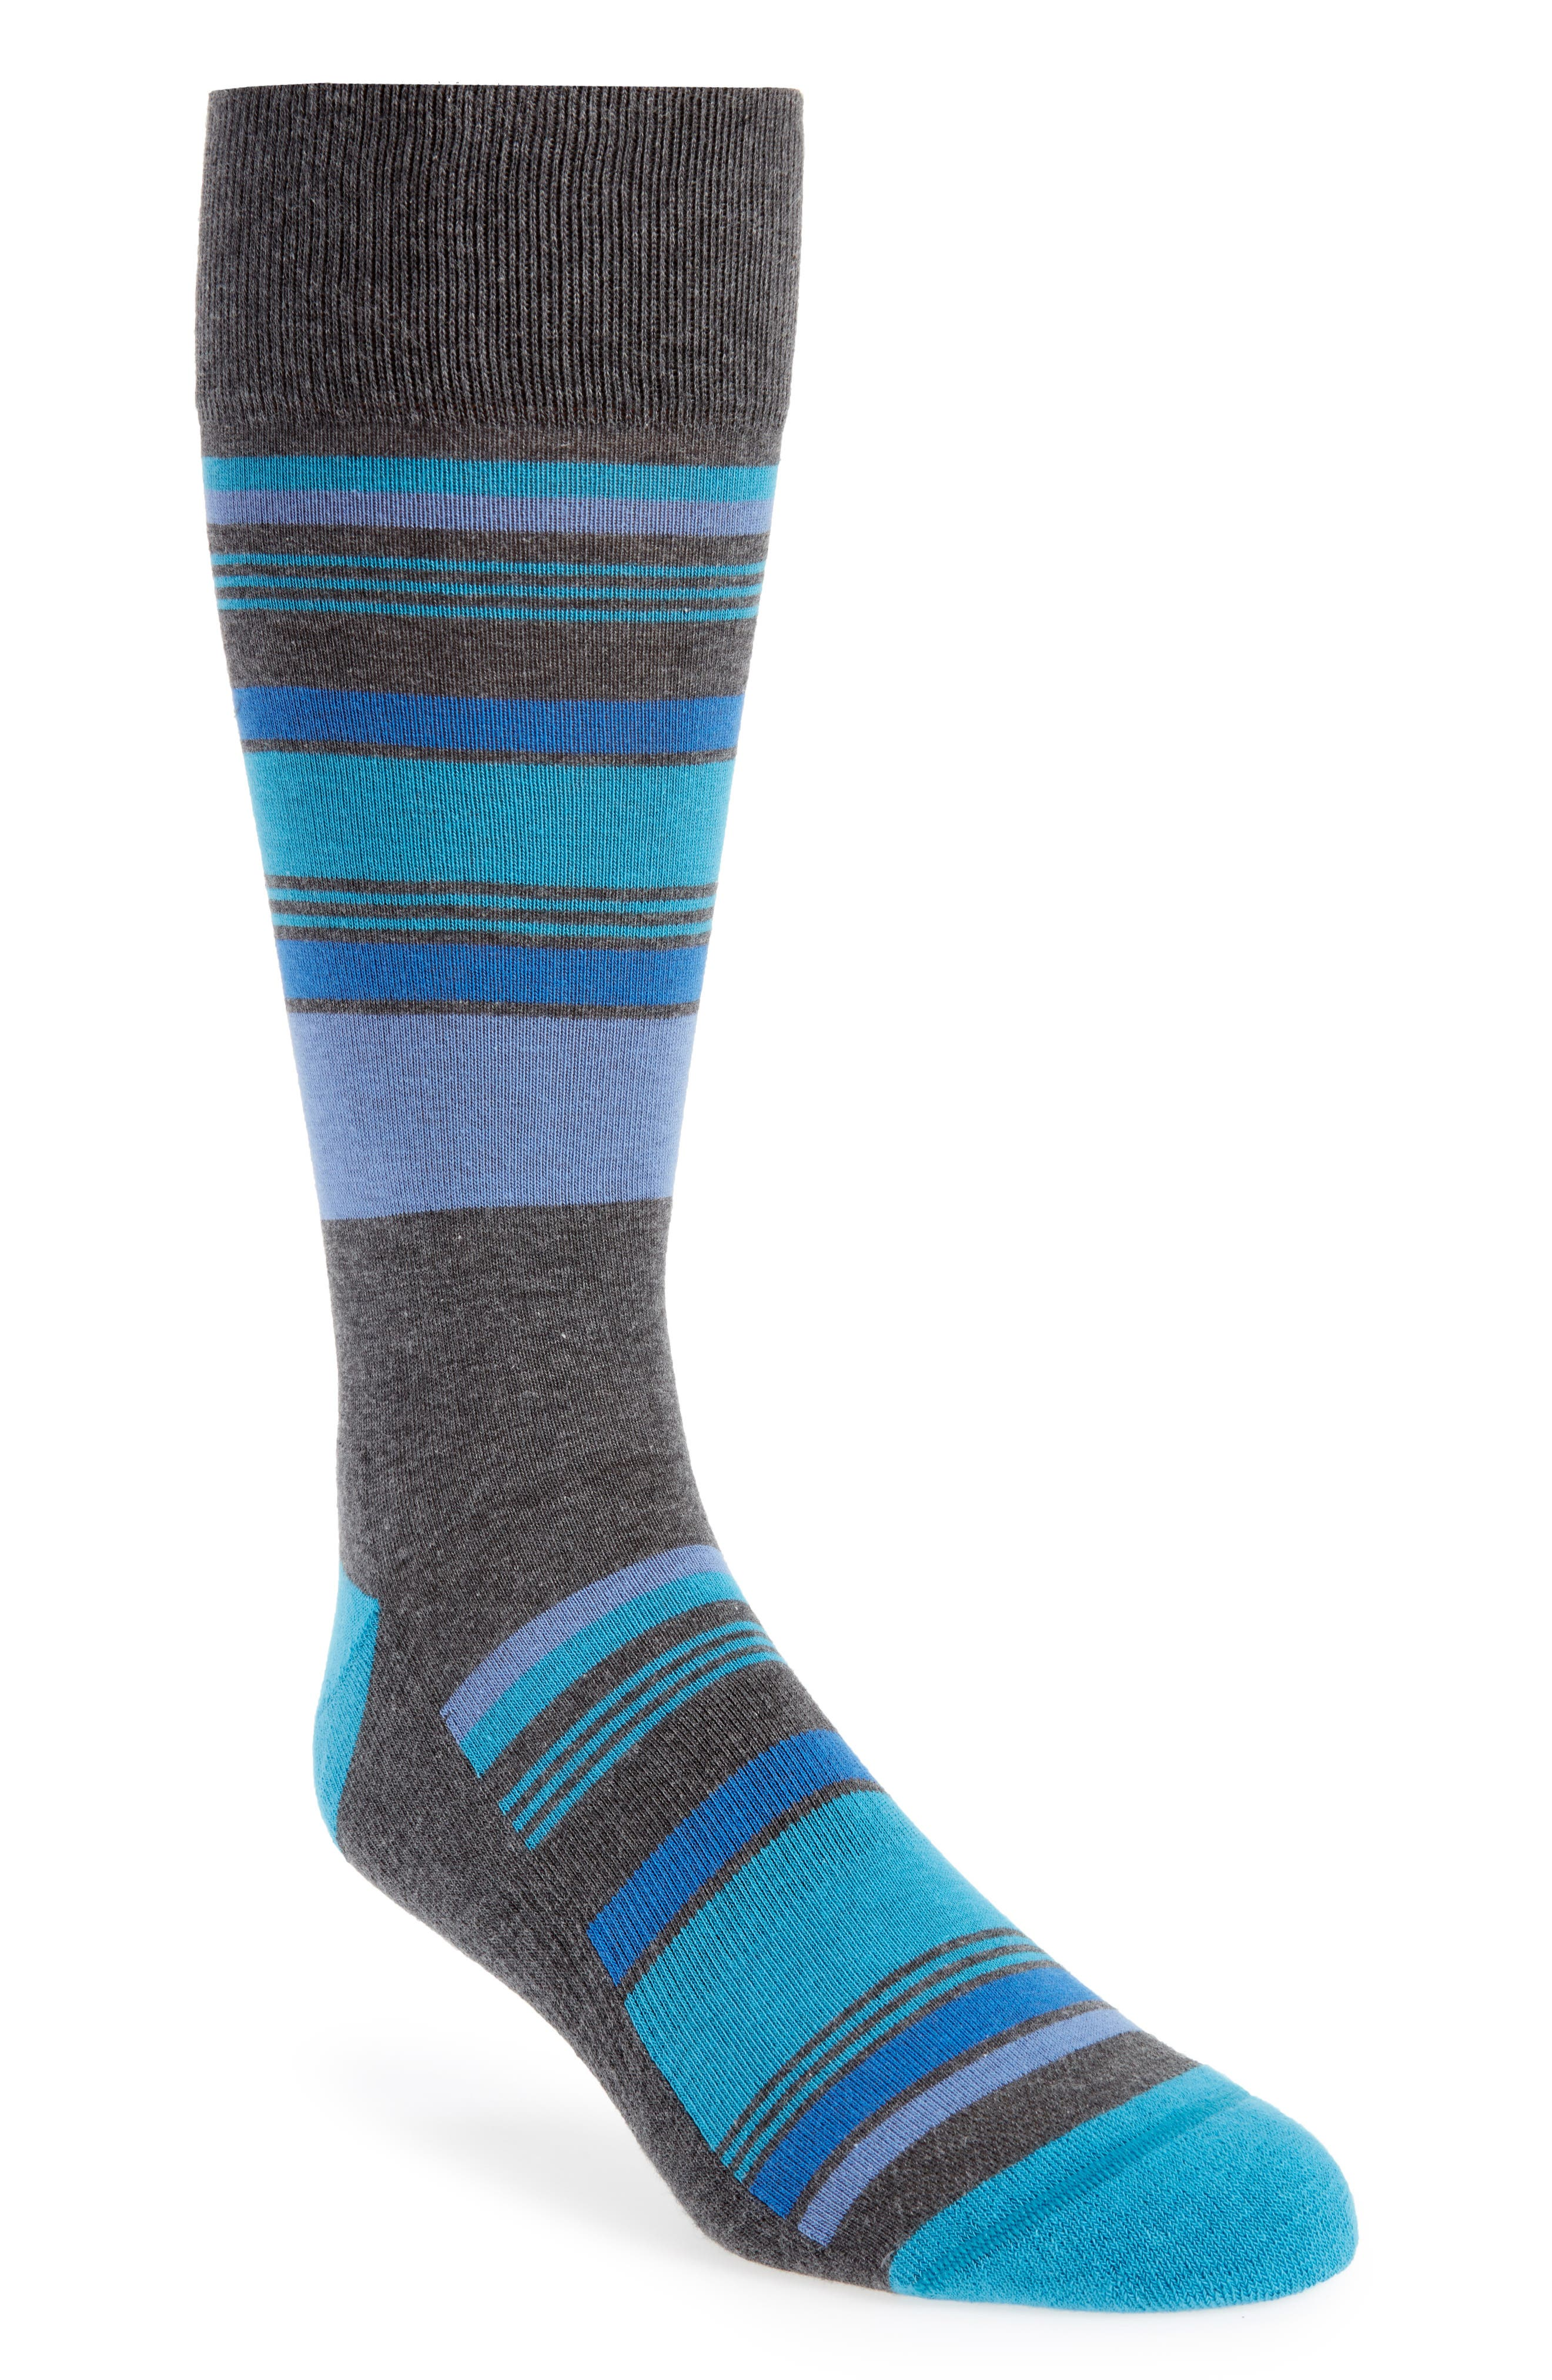 Mixed Uneven Stripe Socks,                         Main,                         color, Blue/ Charcoal